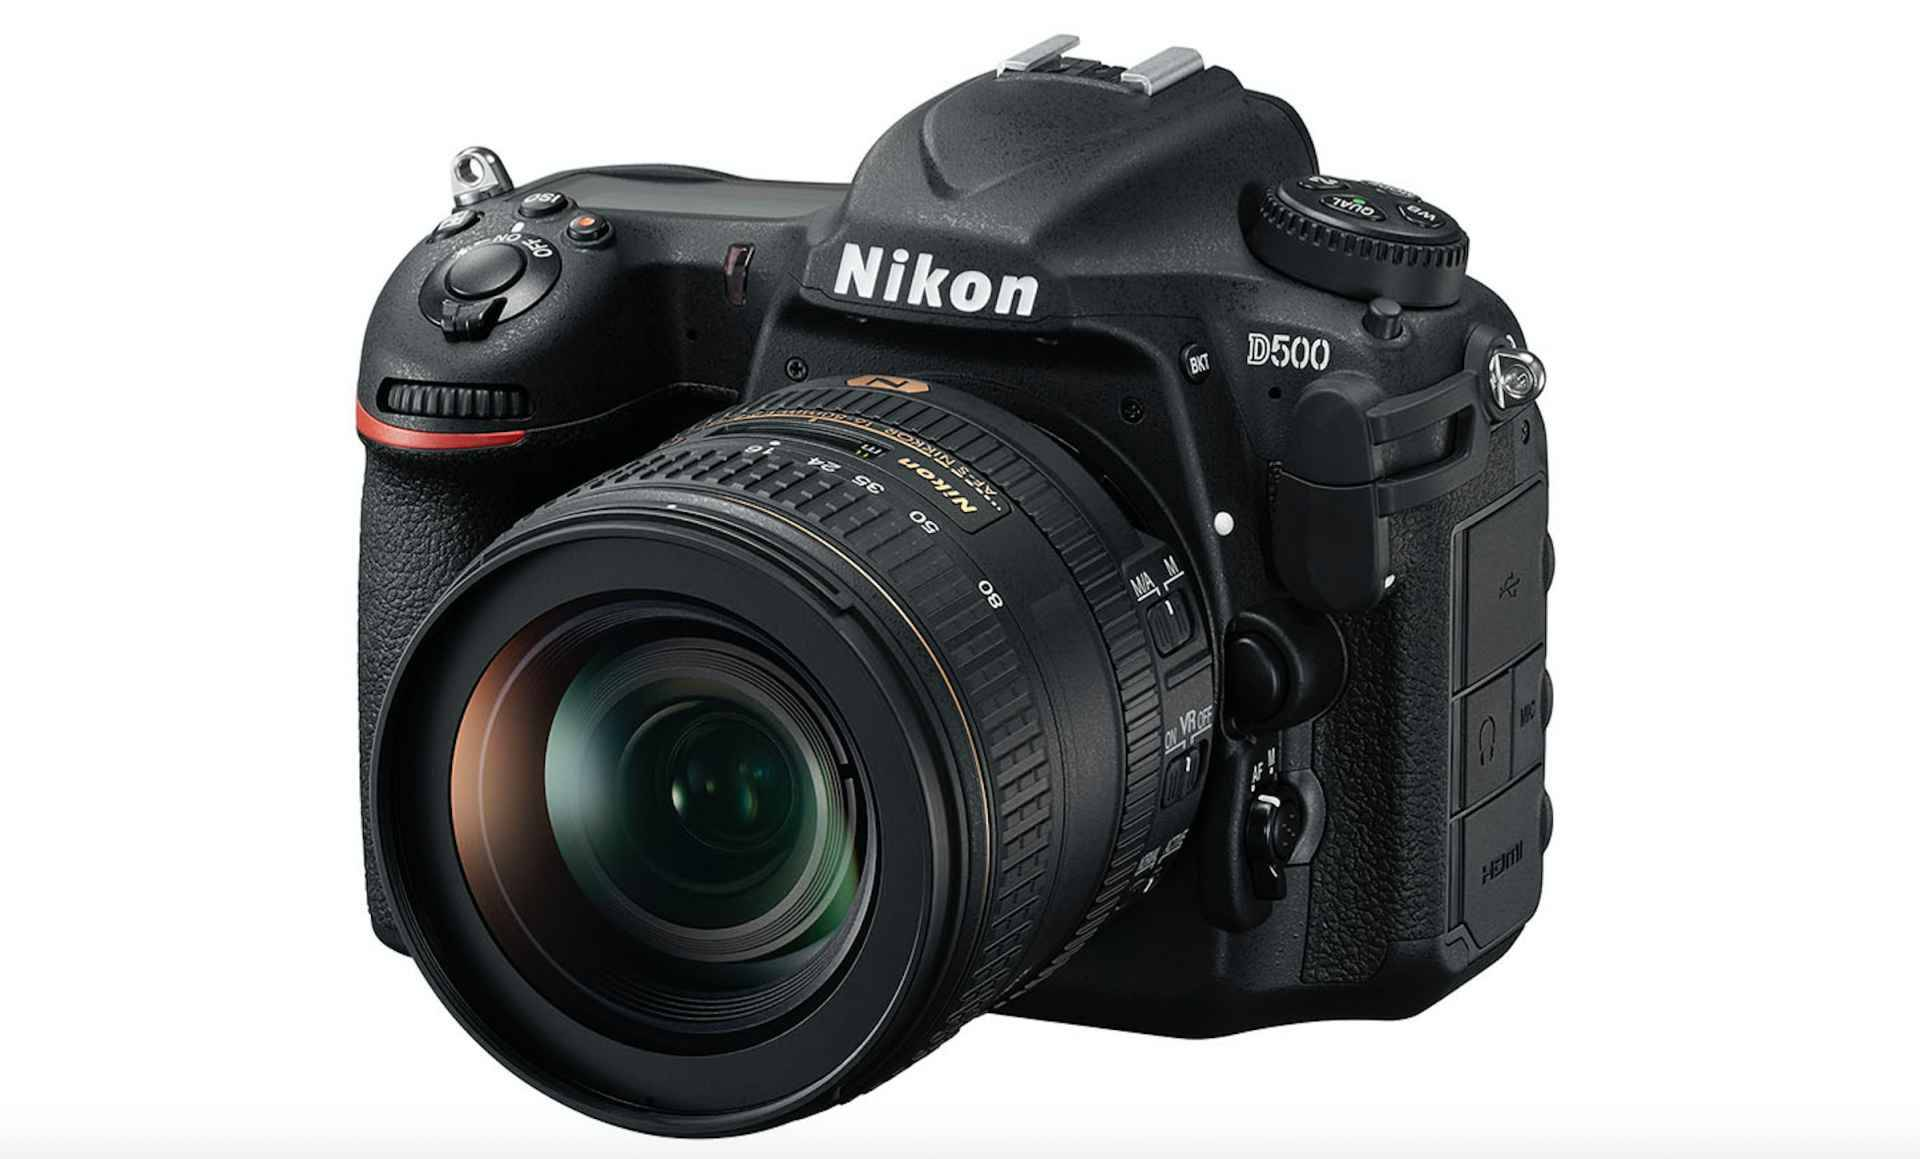 nikon d500 camera specifications